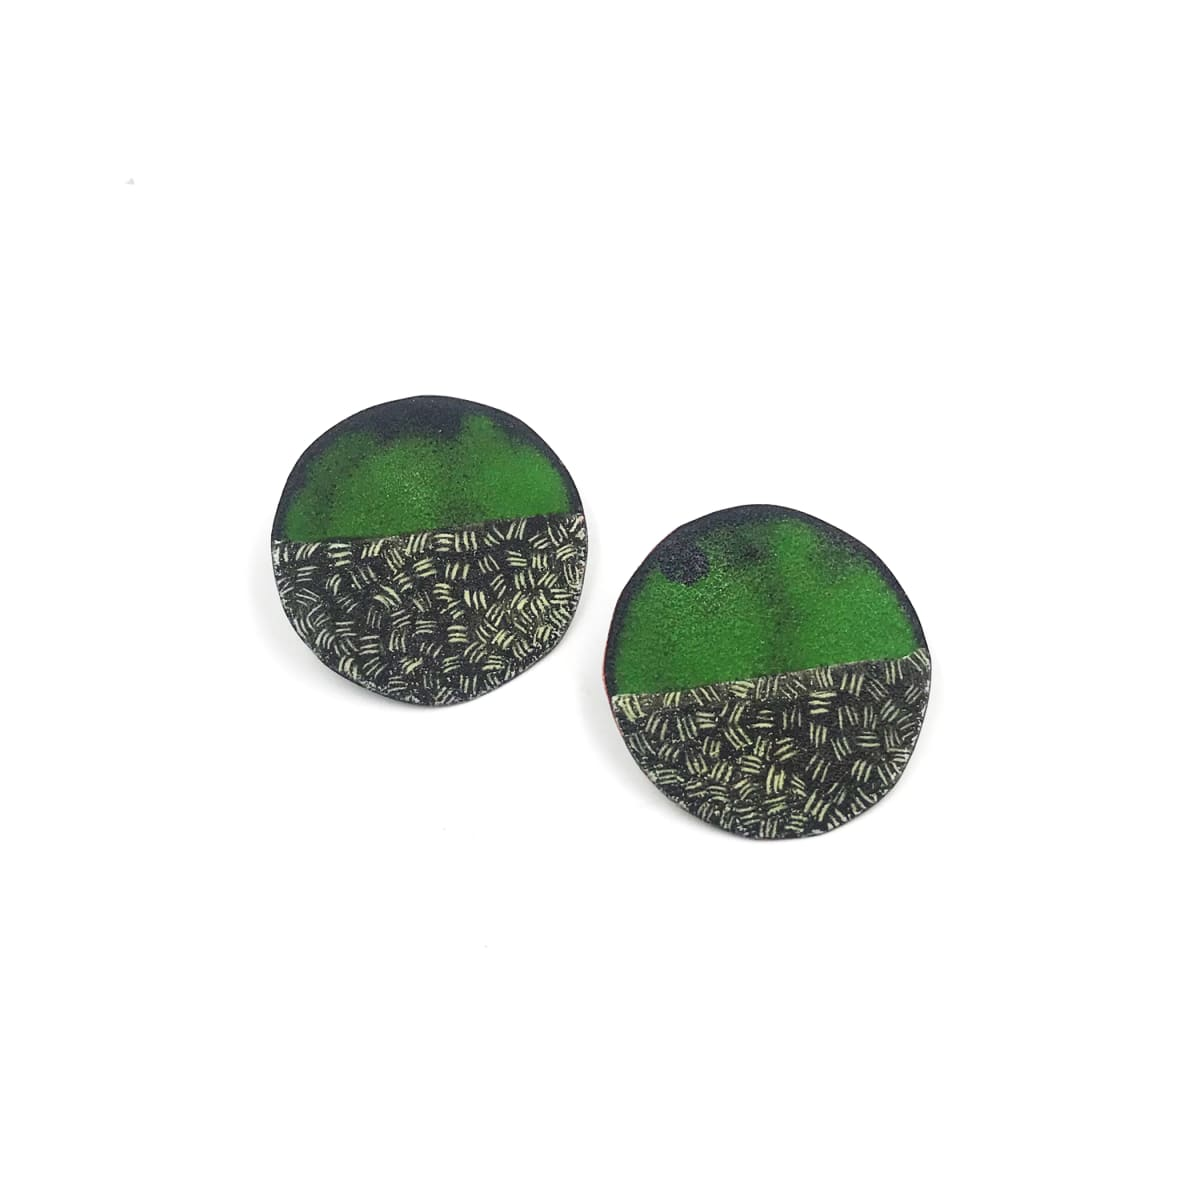 "Tanya Crane, Small (1.5"") round triple dash green earrings"